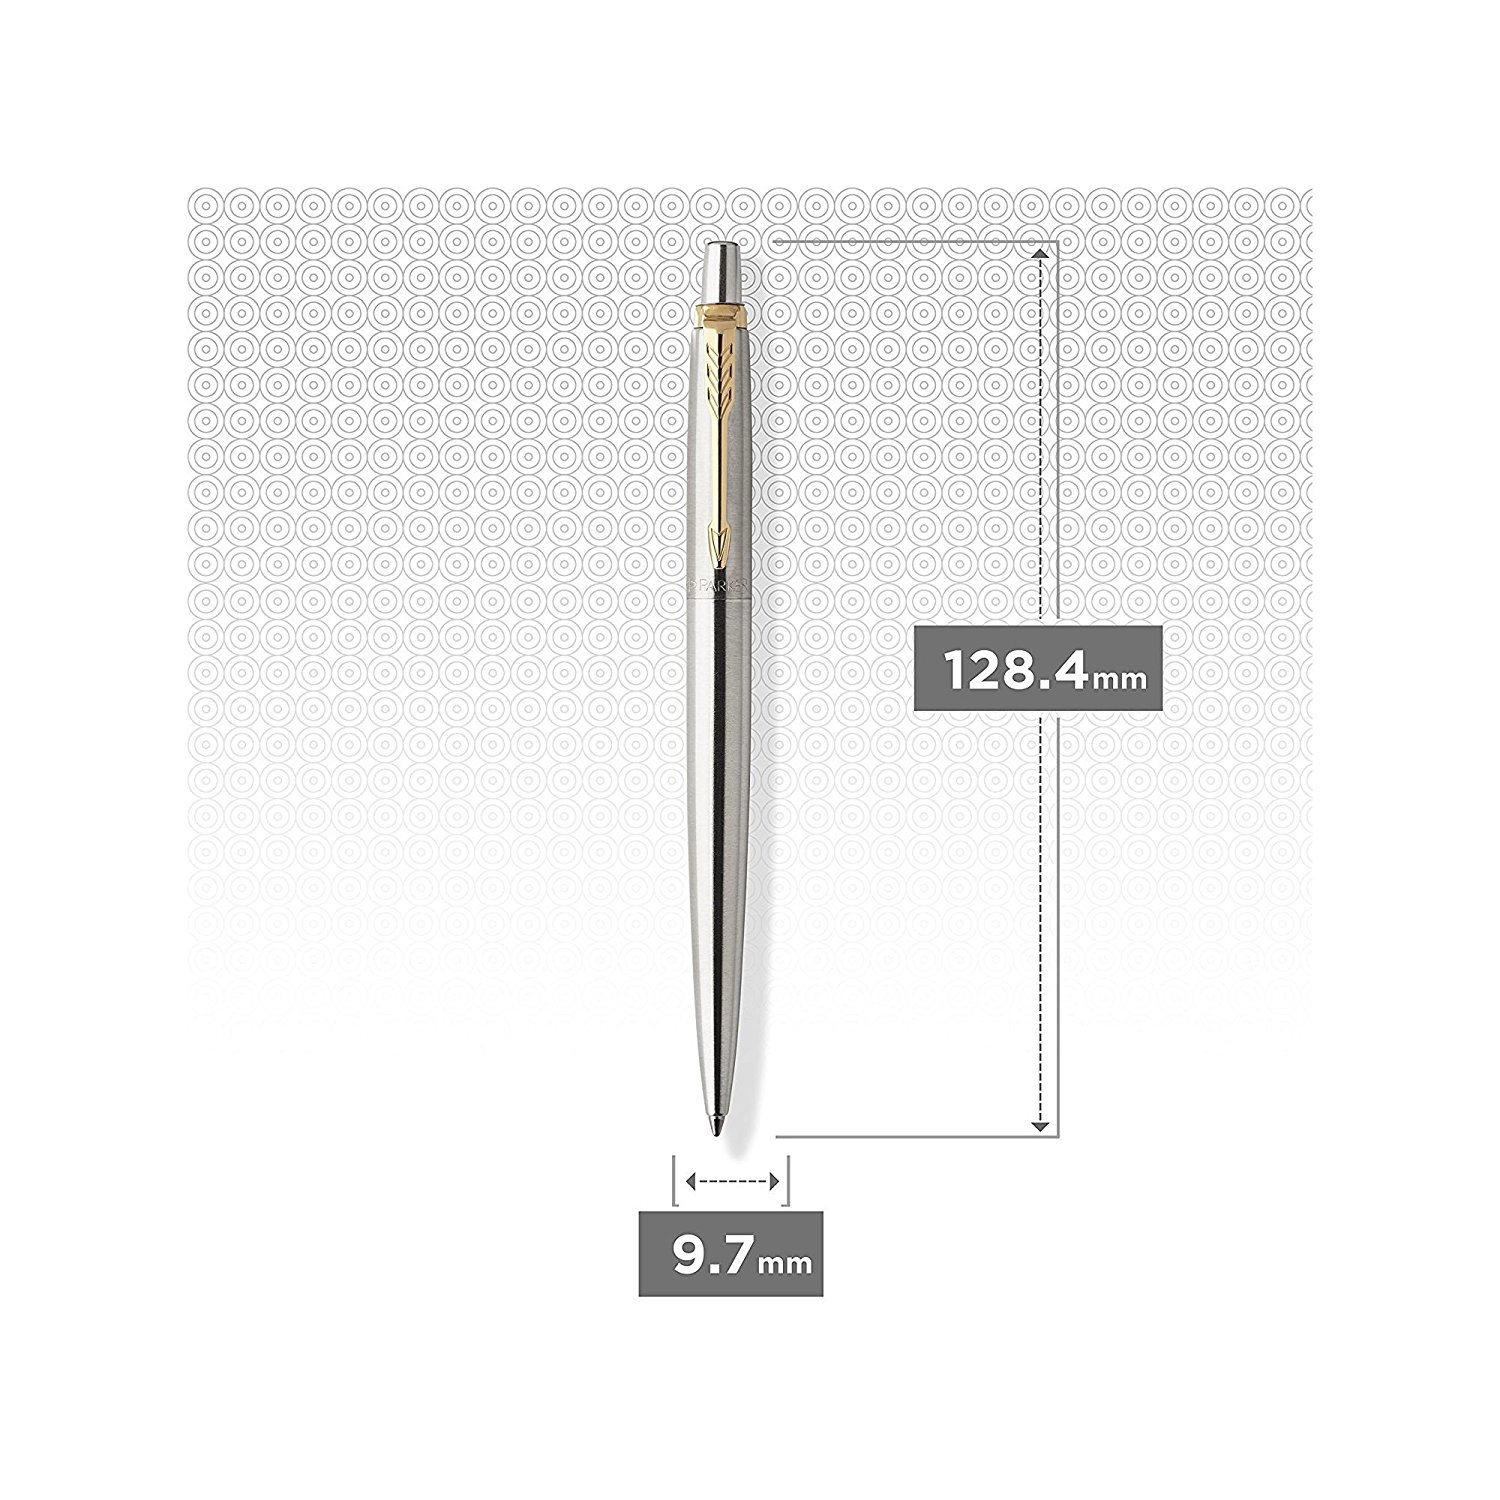 k-ch-th-c-jotter-stainless-steel-gt-1953182.jpg